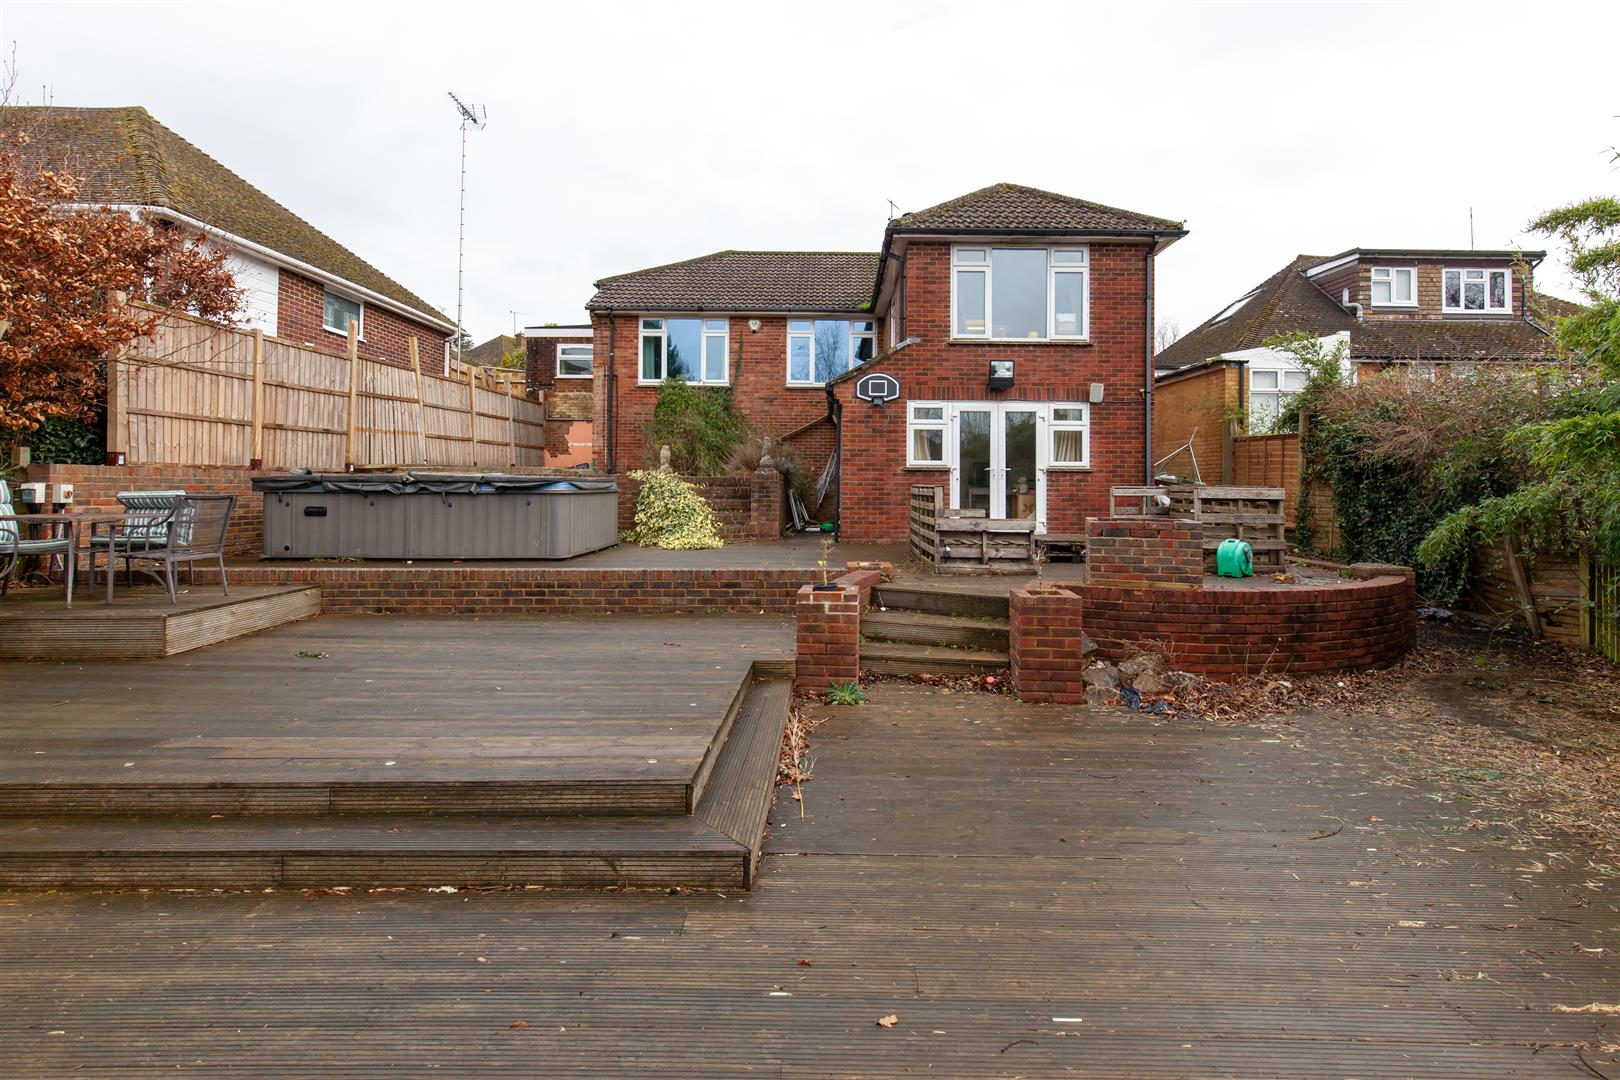 4 bed detached-bungalow for sale in Gorselands, Battle  - Property Image 29